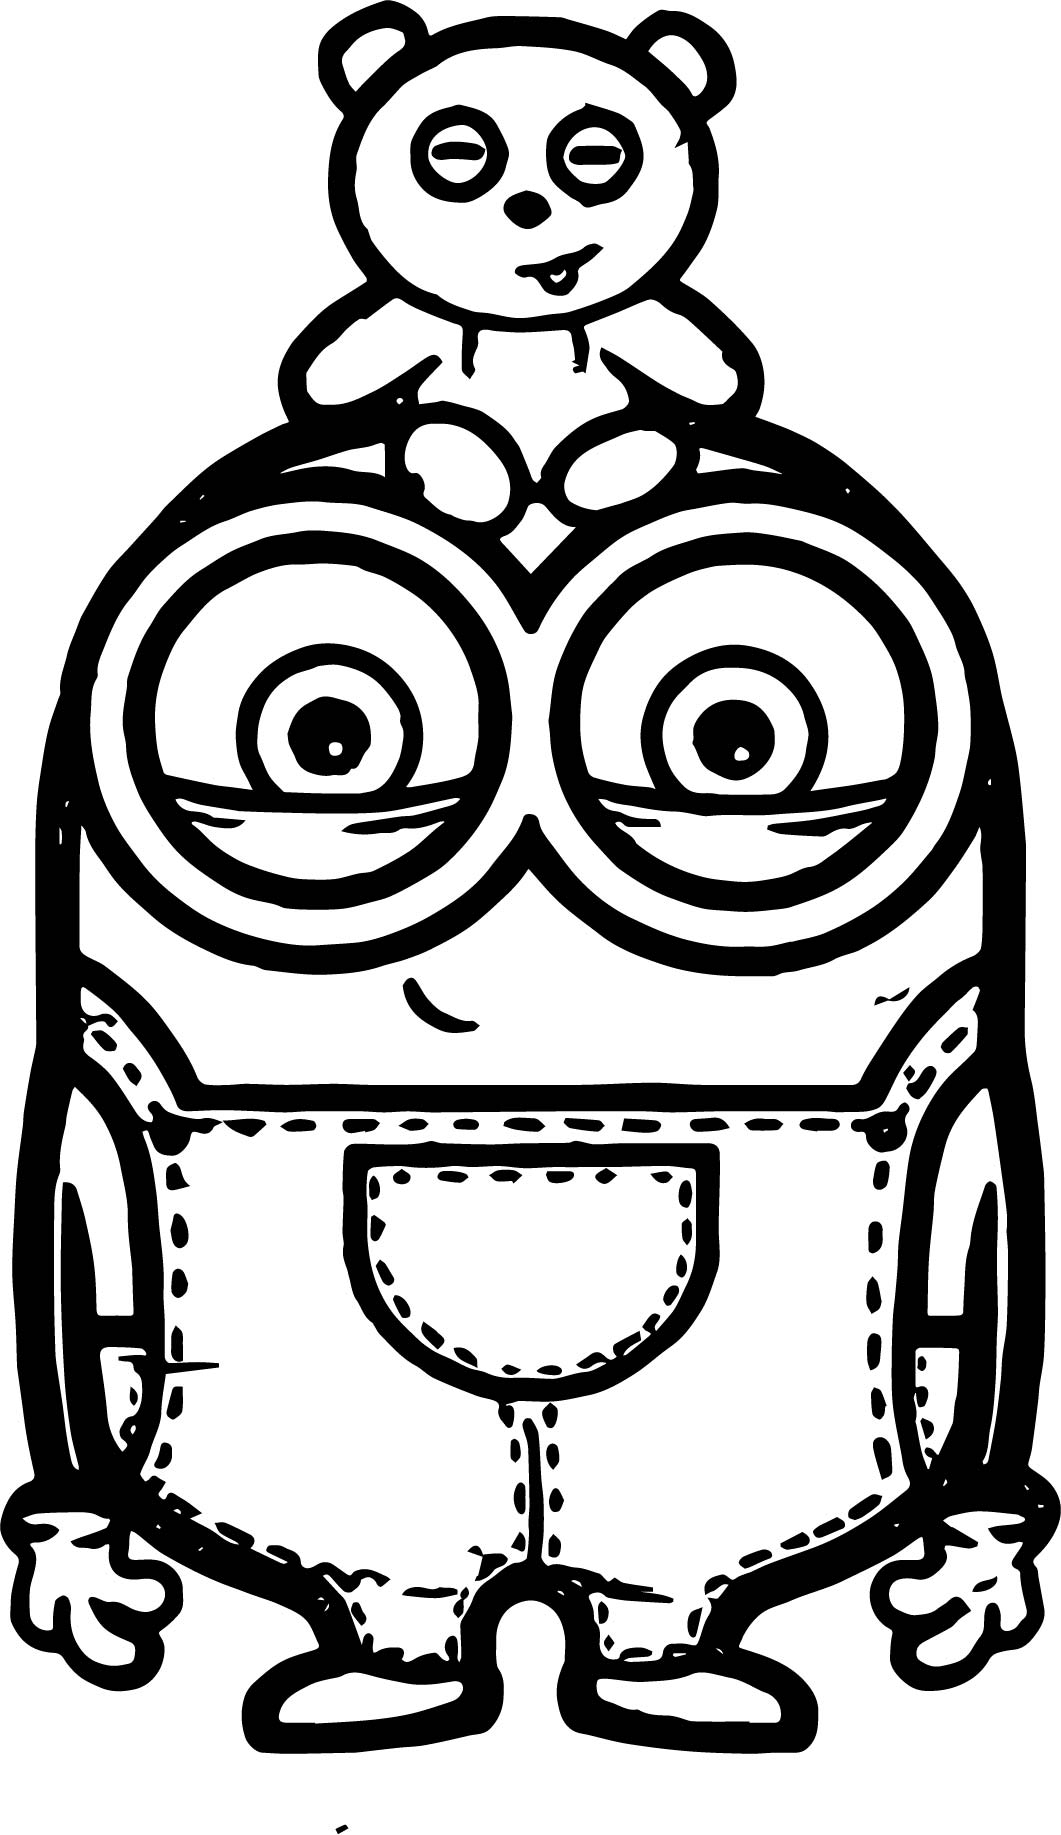 Awesome Minion Coloring Pages Bob   Minion Bob Bear Toy Coloring Page